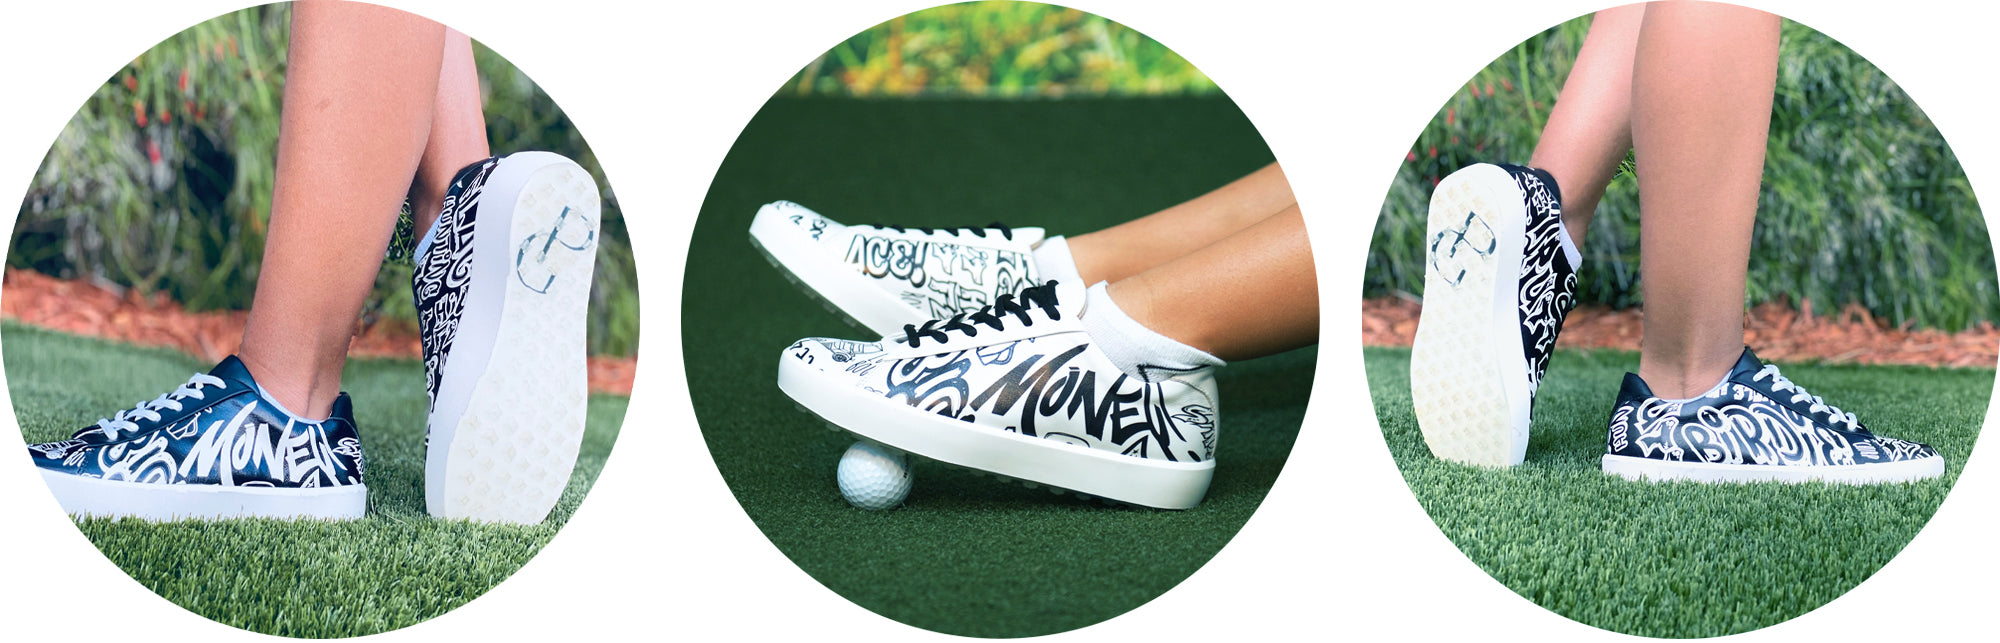 Golfitti Shoes Collage